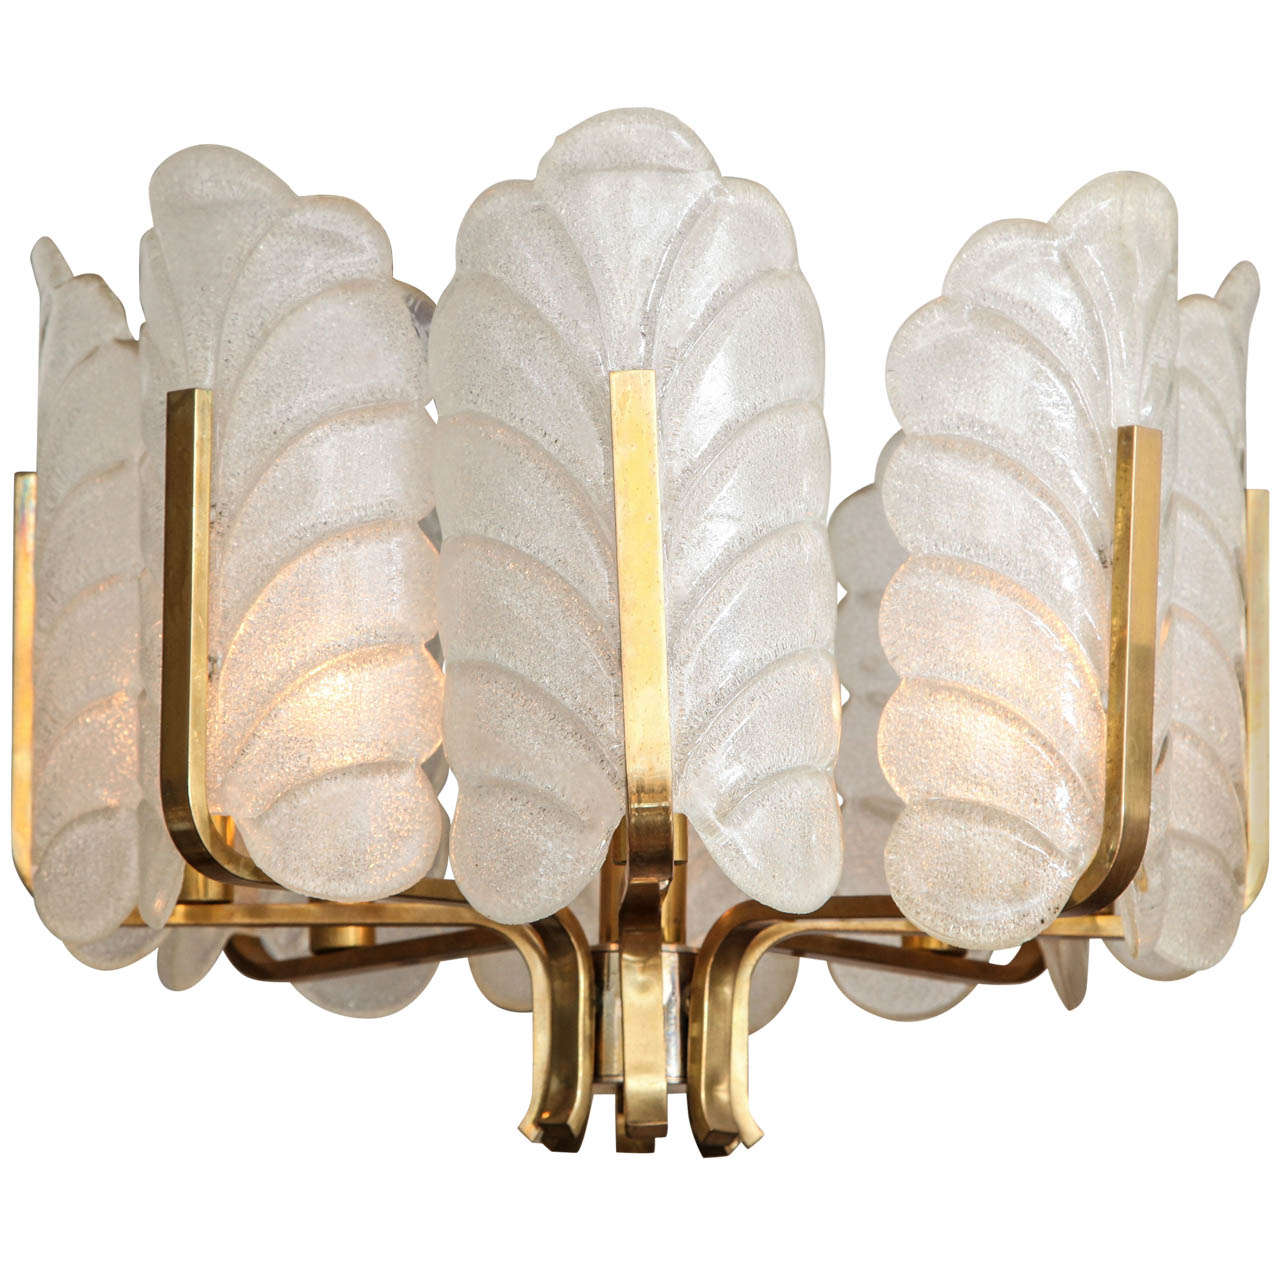 Leaf Form Murano Glass Brass Chandelier by Carl Fagerlund for Orrefors